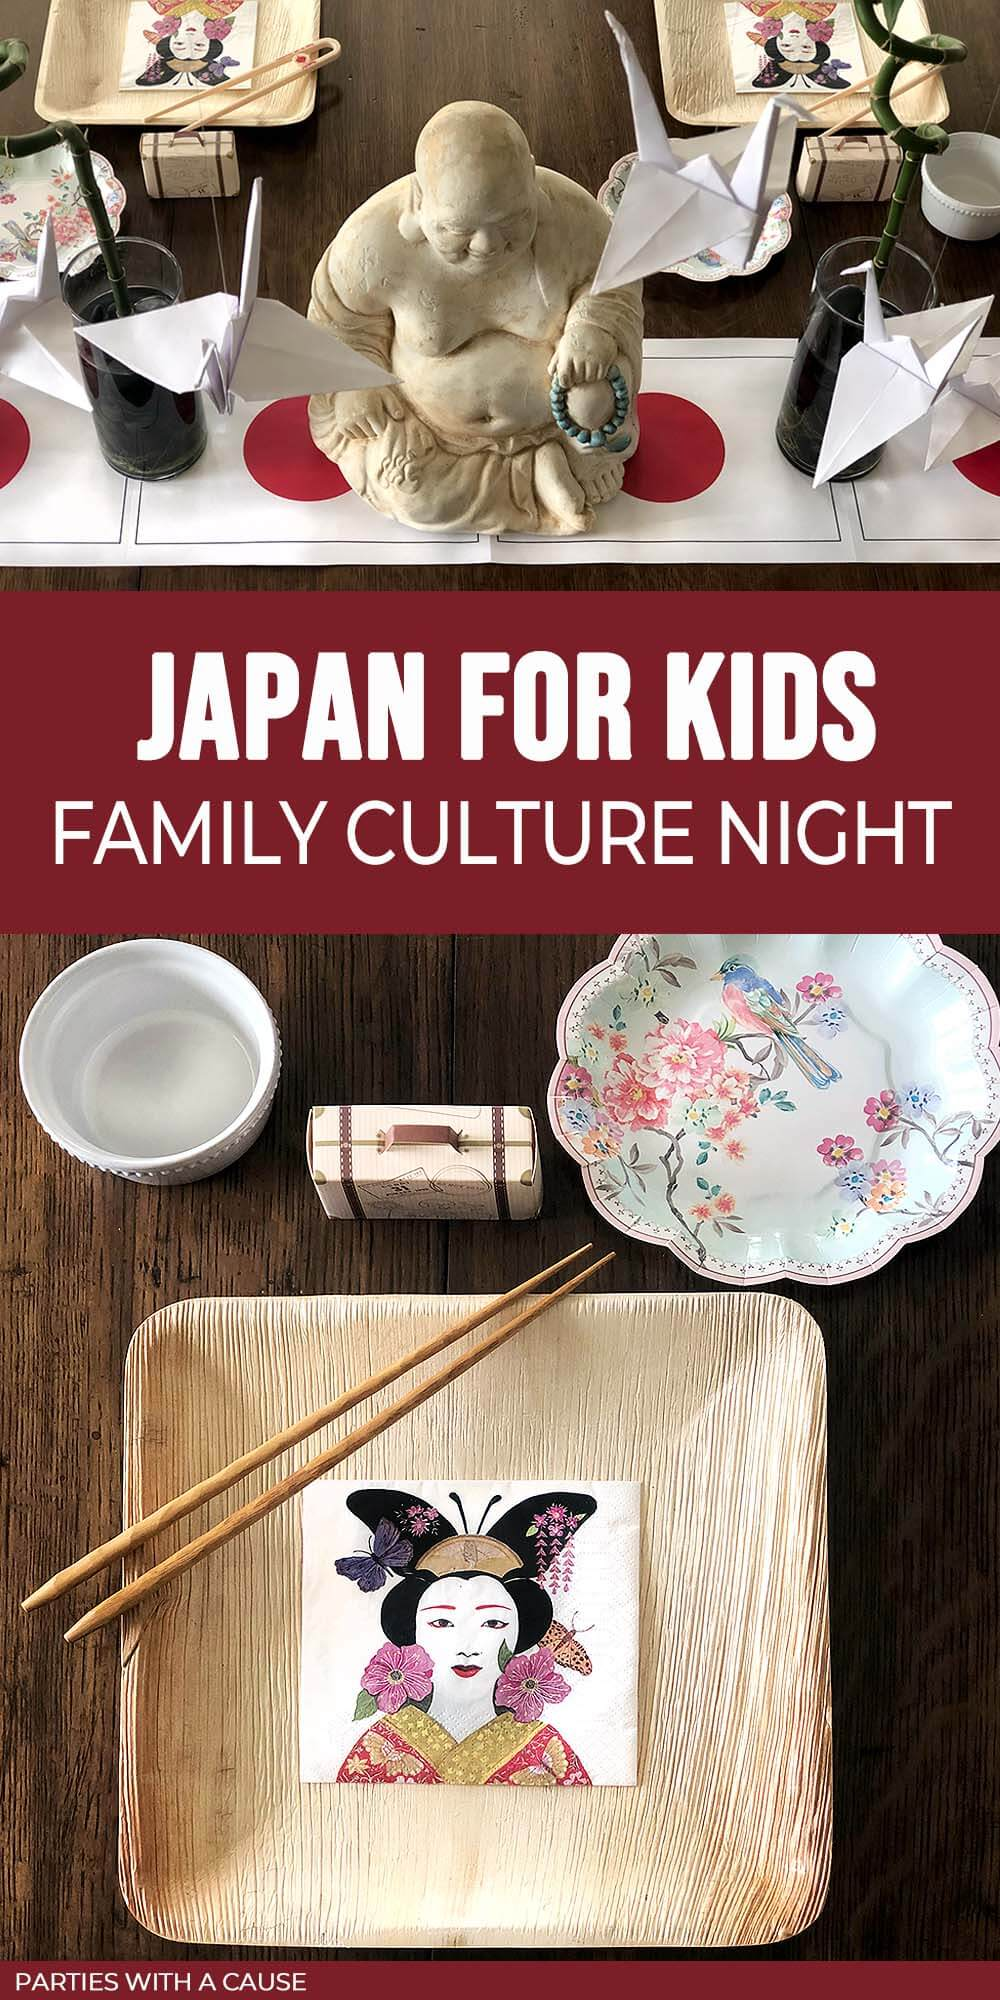 Japan fun for kids - family culture night